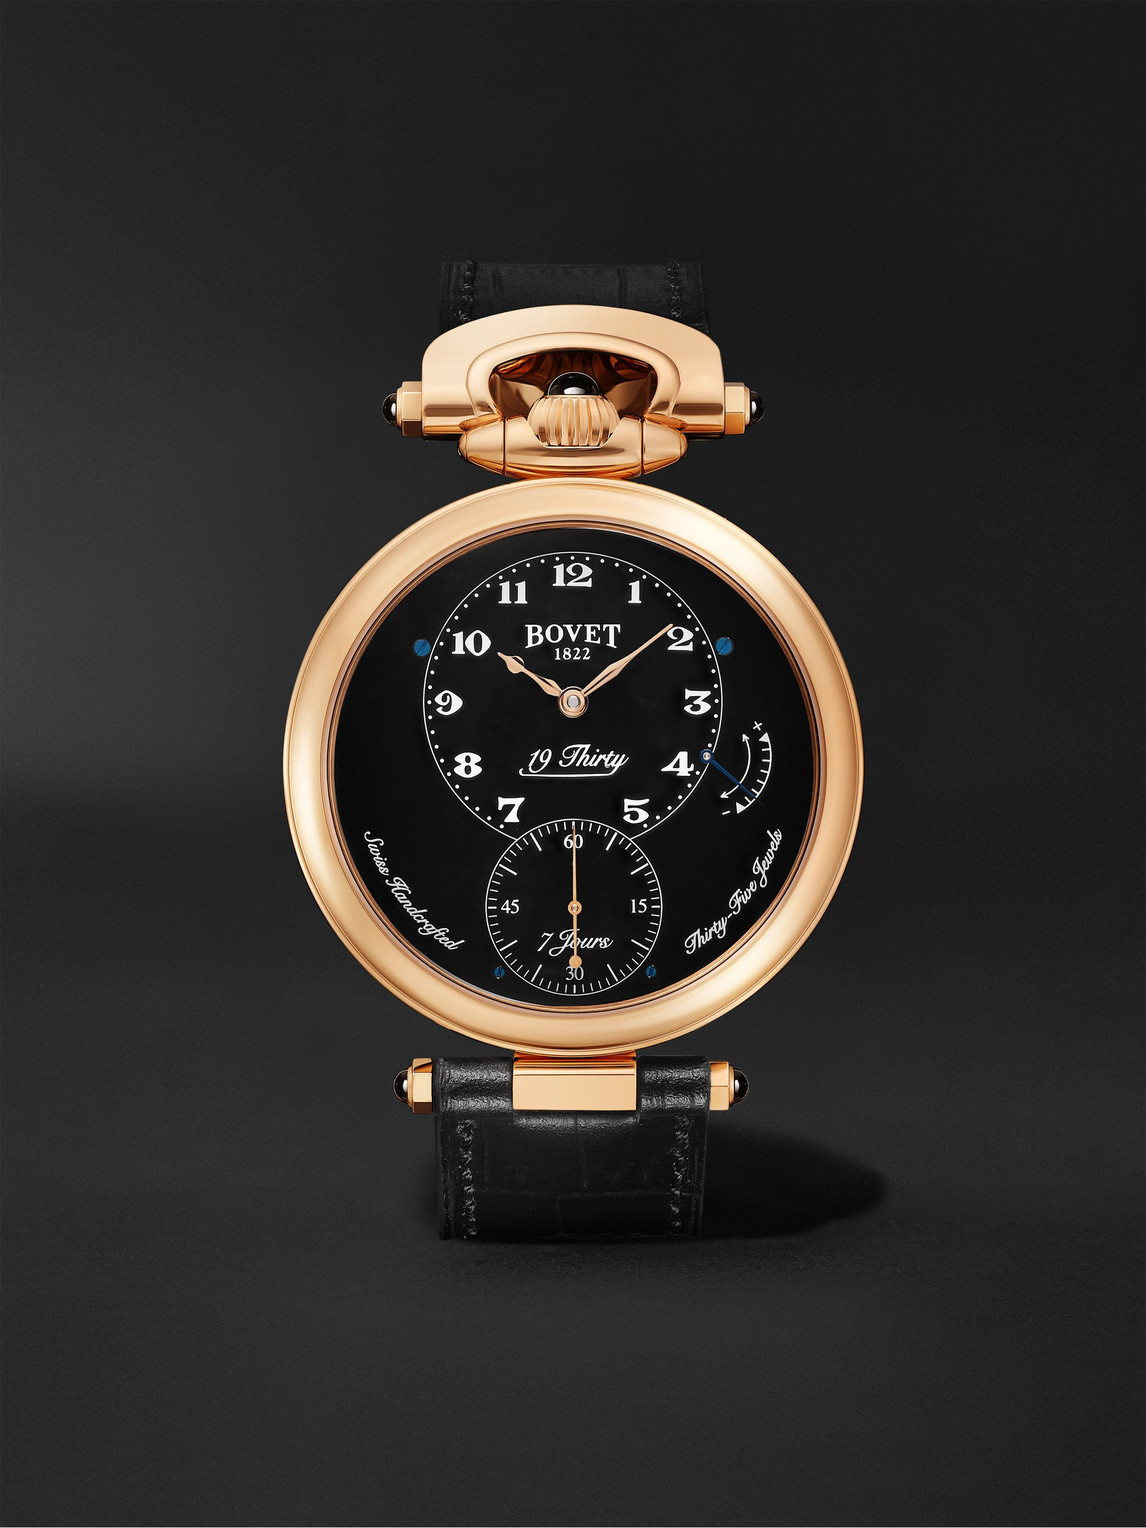 Bovet 19thirty Fleurier Hand-wound 42mm 18-karat Rose Gold And Leather Watch, Ref. No. Ntr0029 In Black